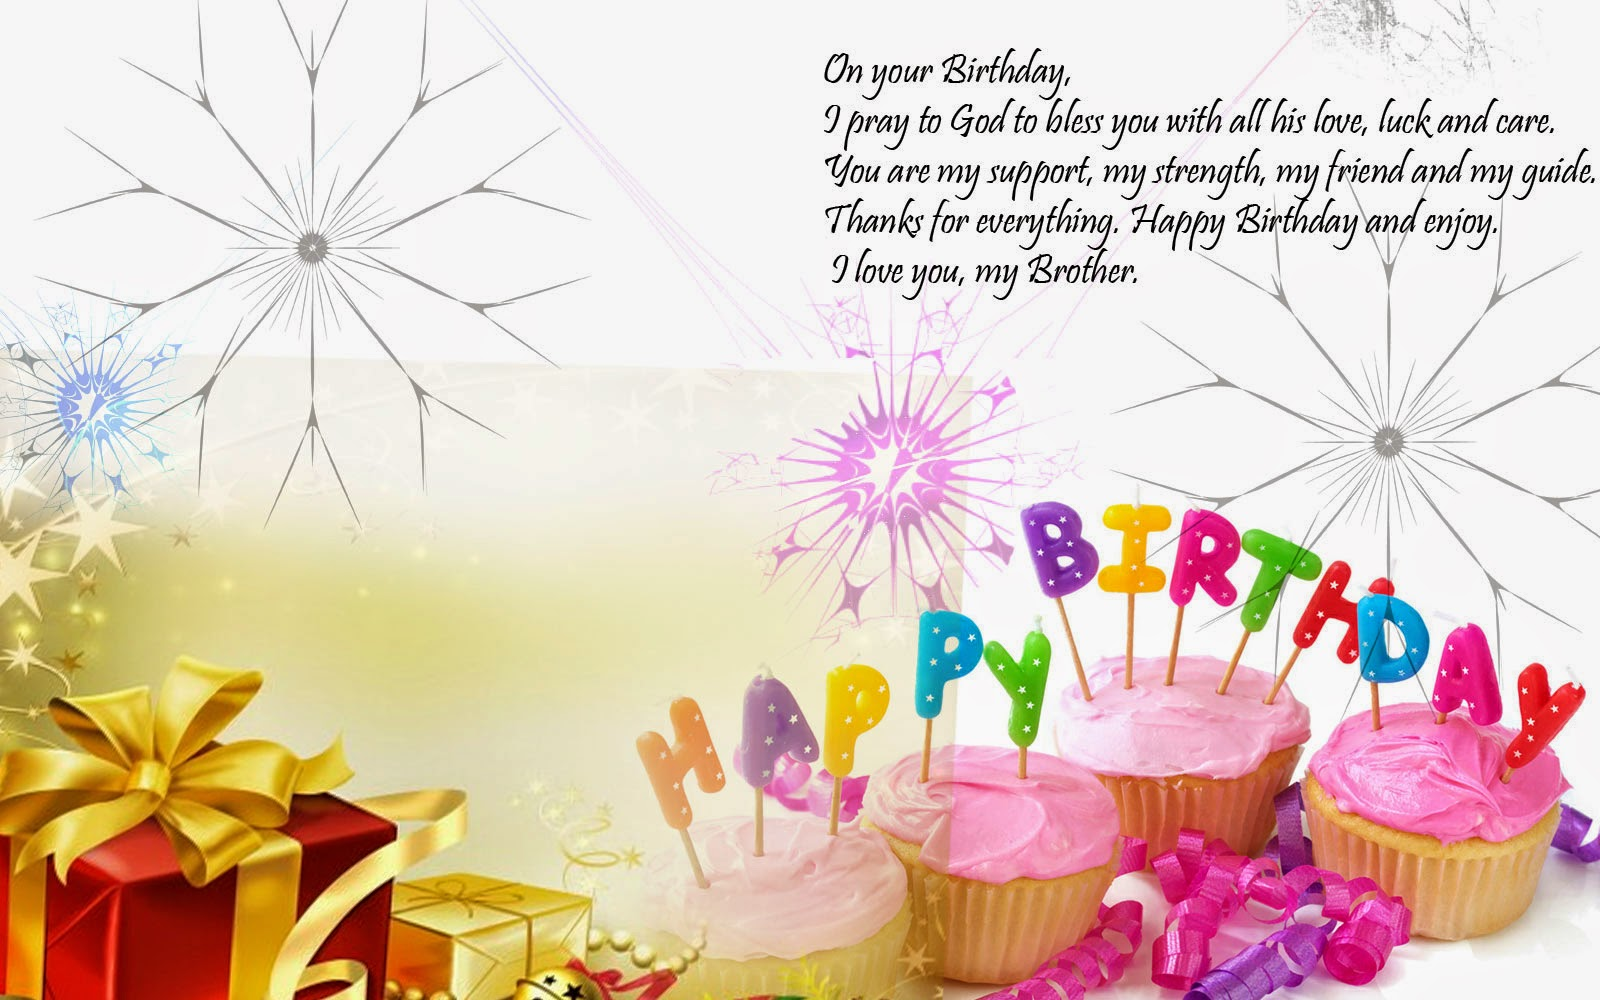 Birthday Wishes And Greetings 2015